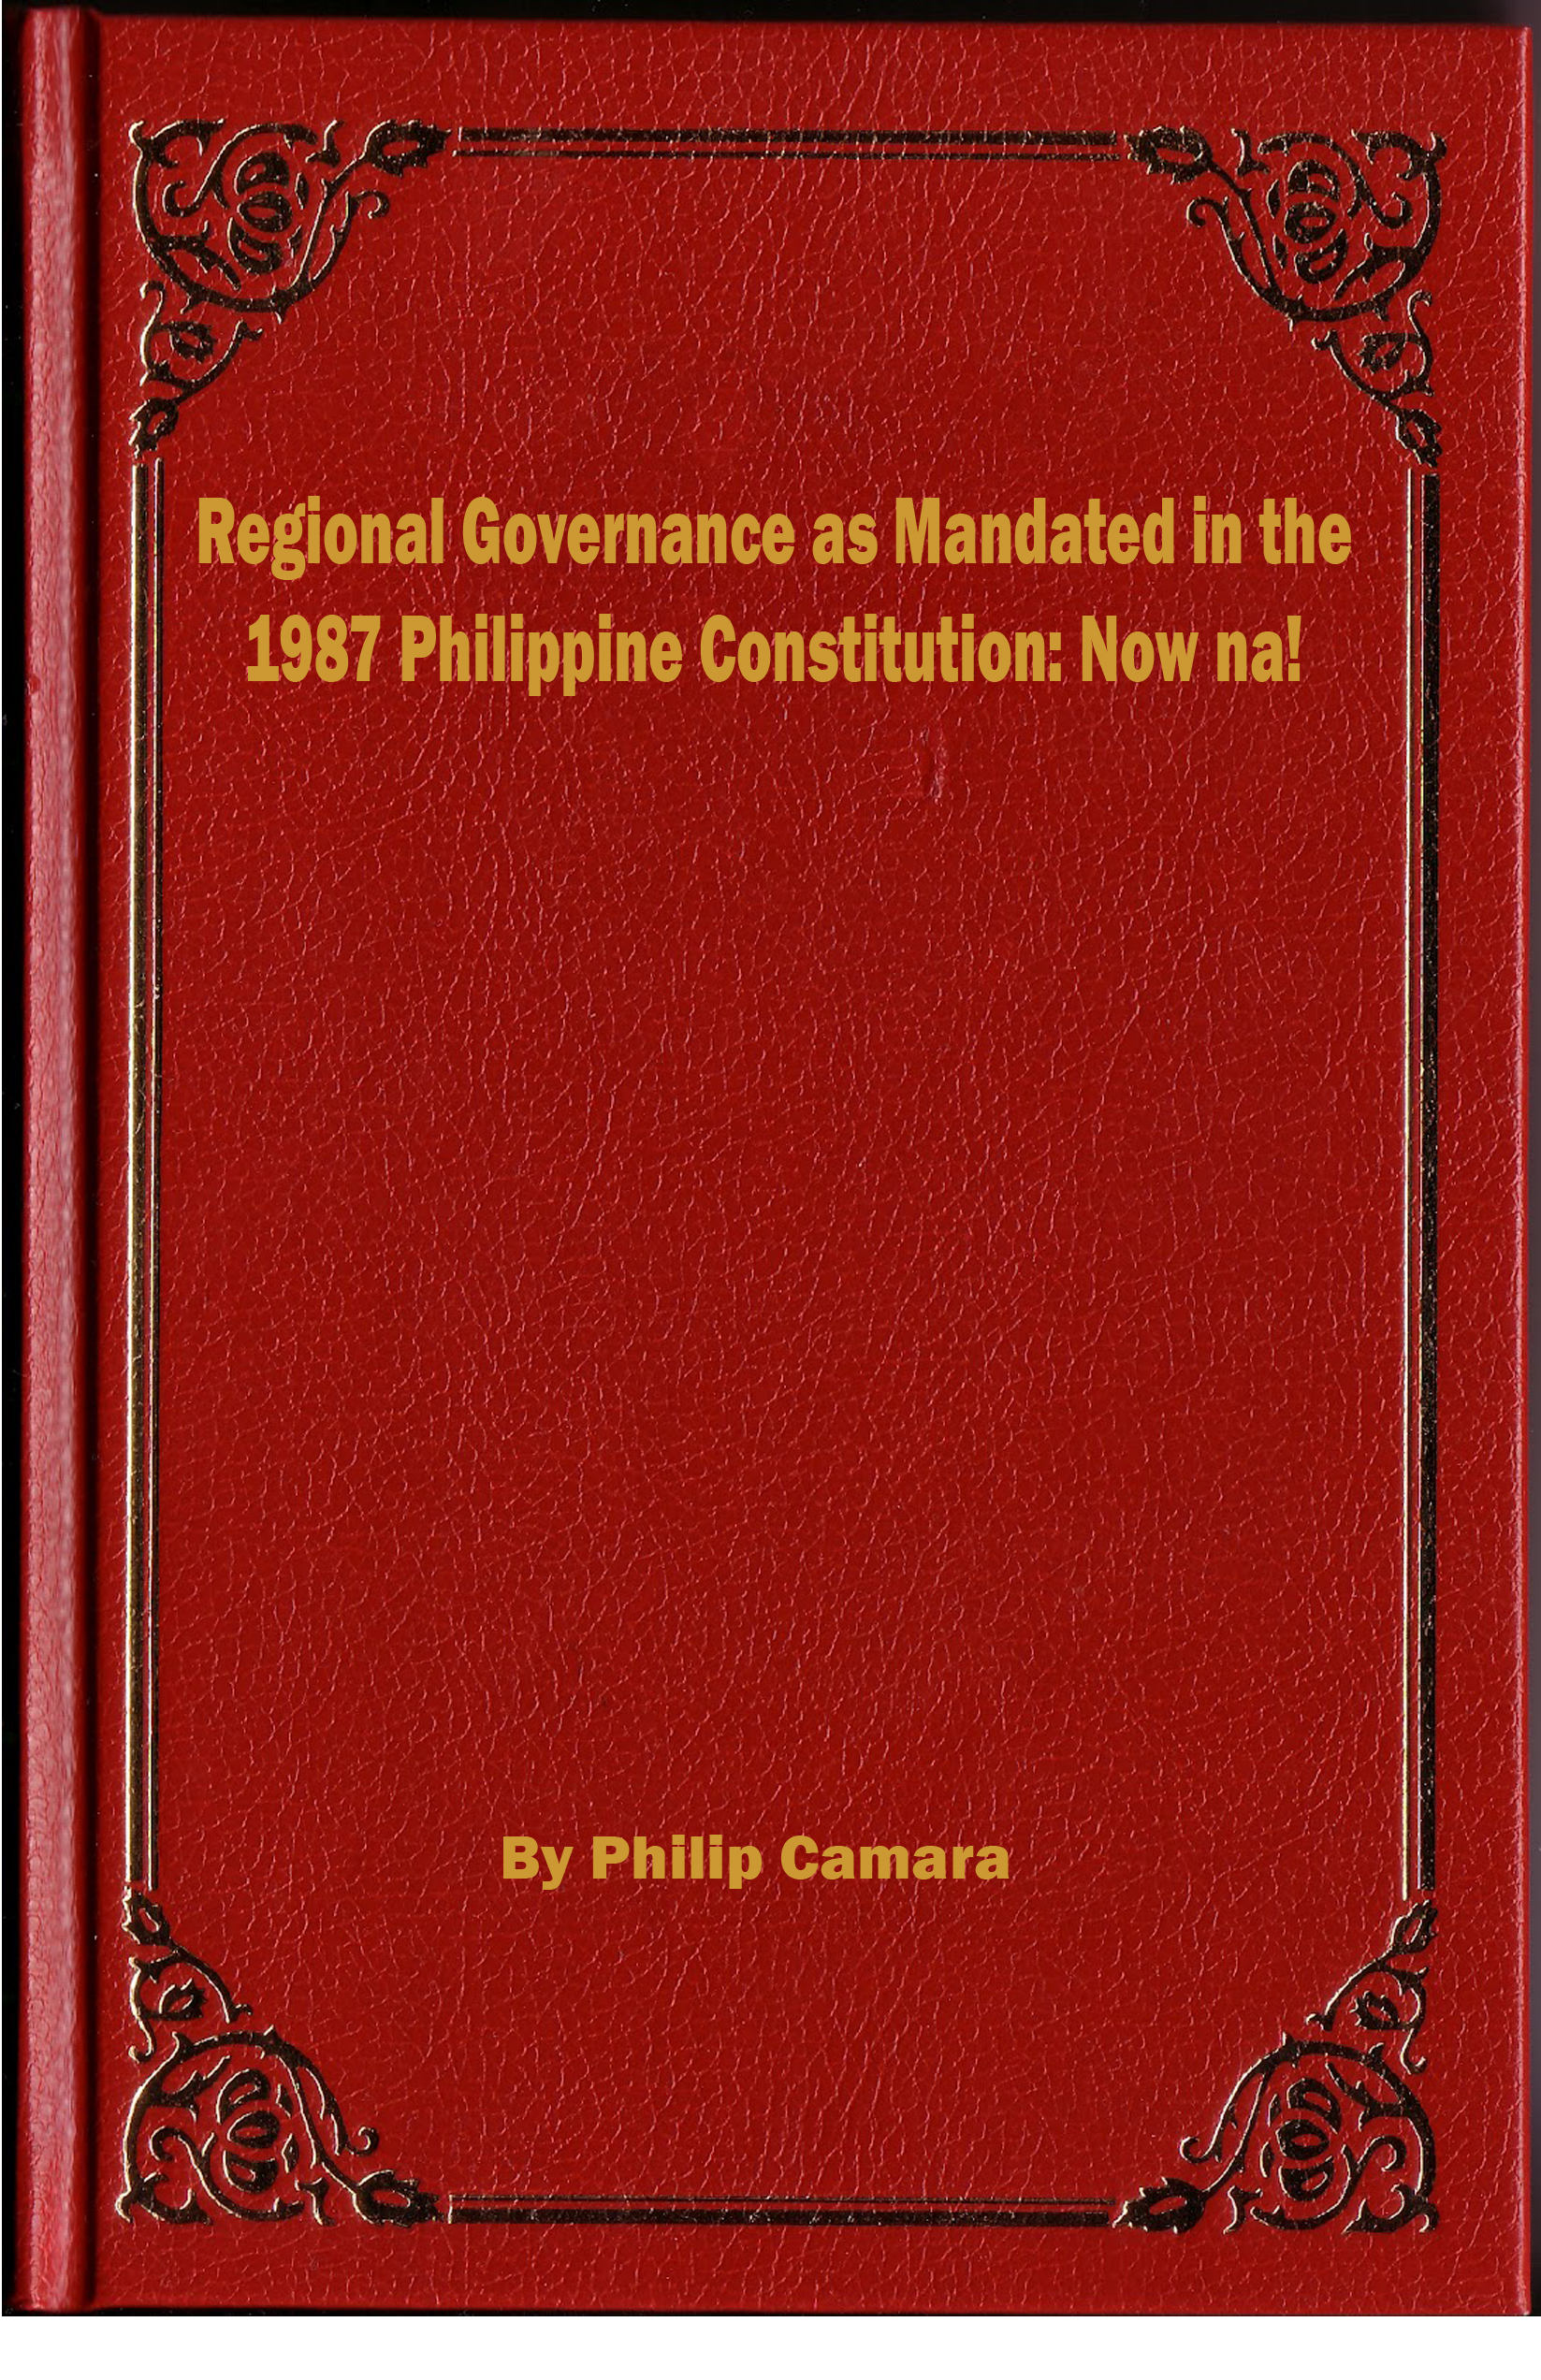 Regional Governance as Mandated in the 1987 Philippines Constitution